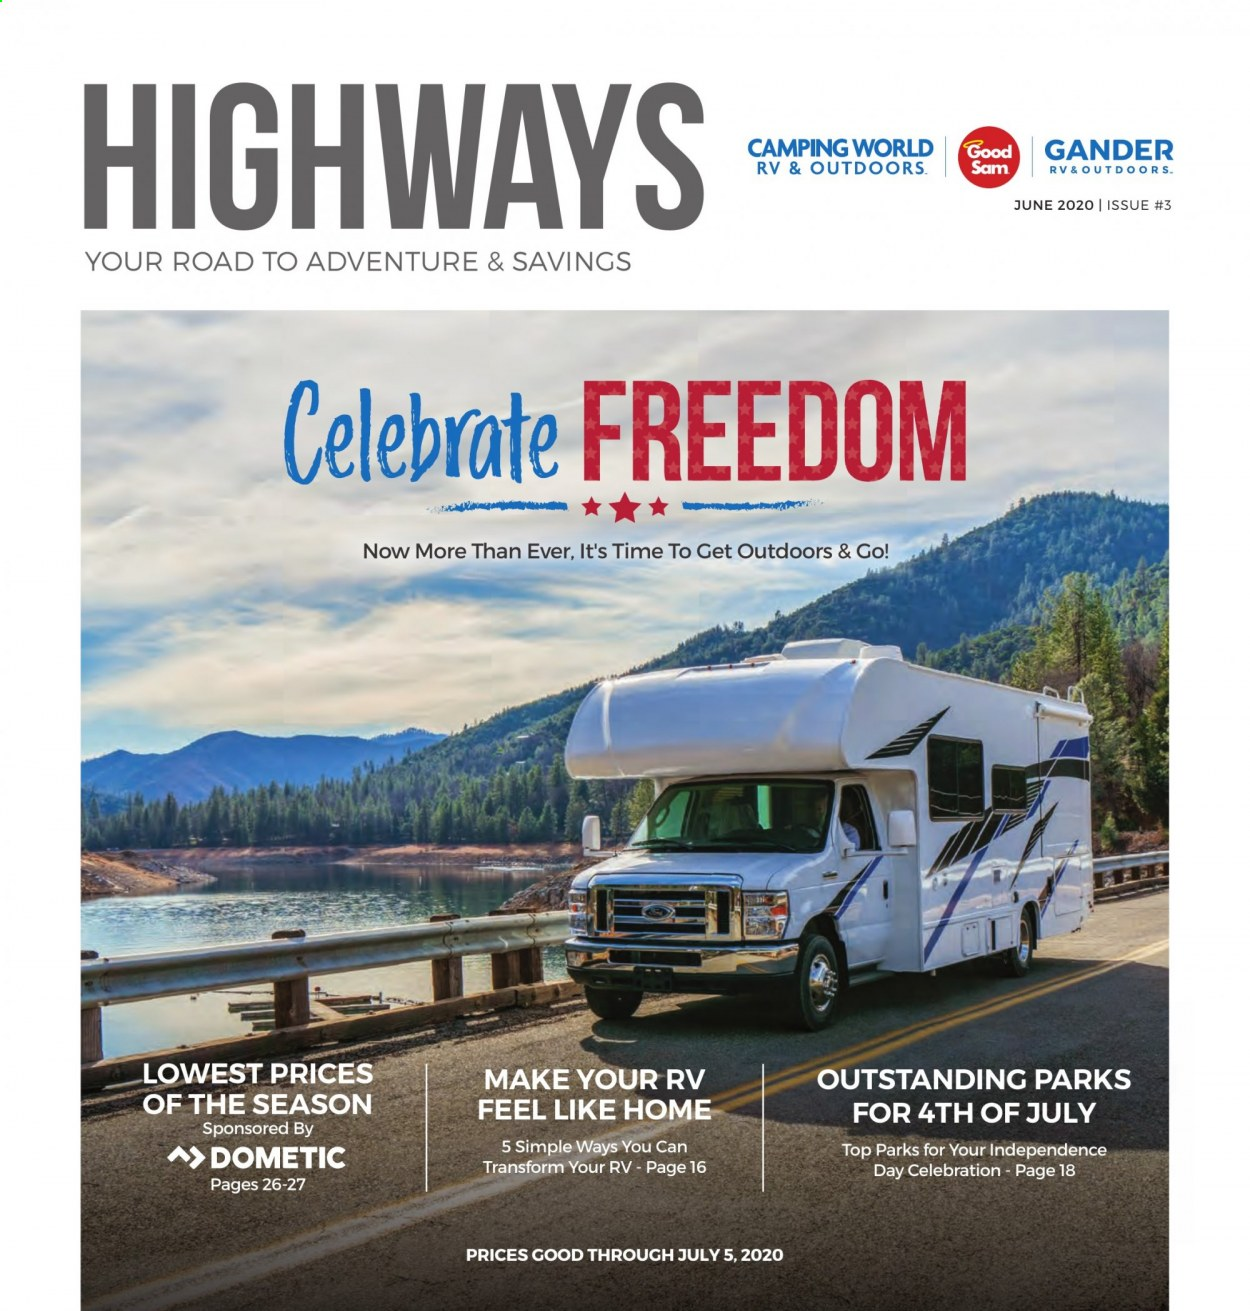 Gander RV & Outdoors Flyer  - 06.01.2020 - 07.05.2020. Page 1.